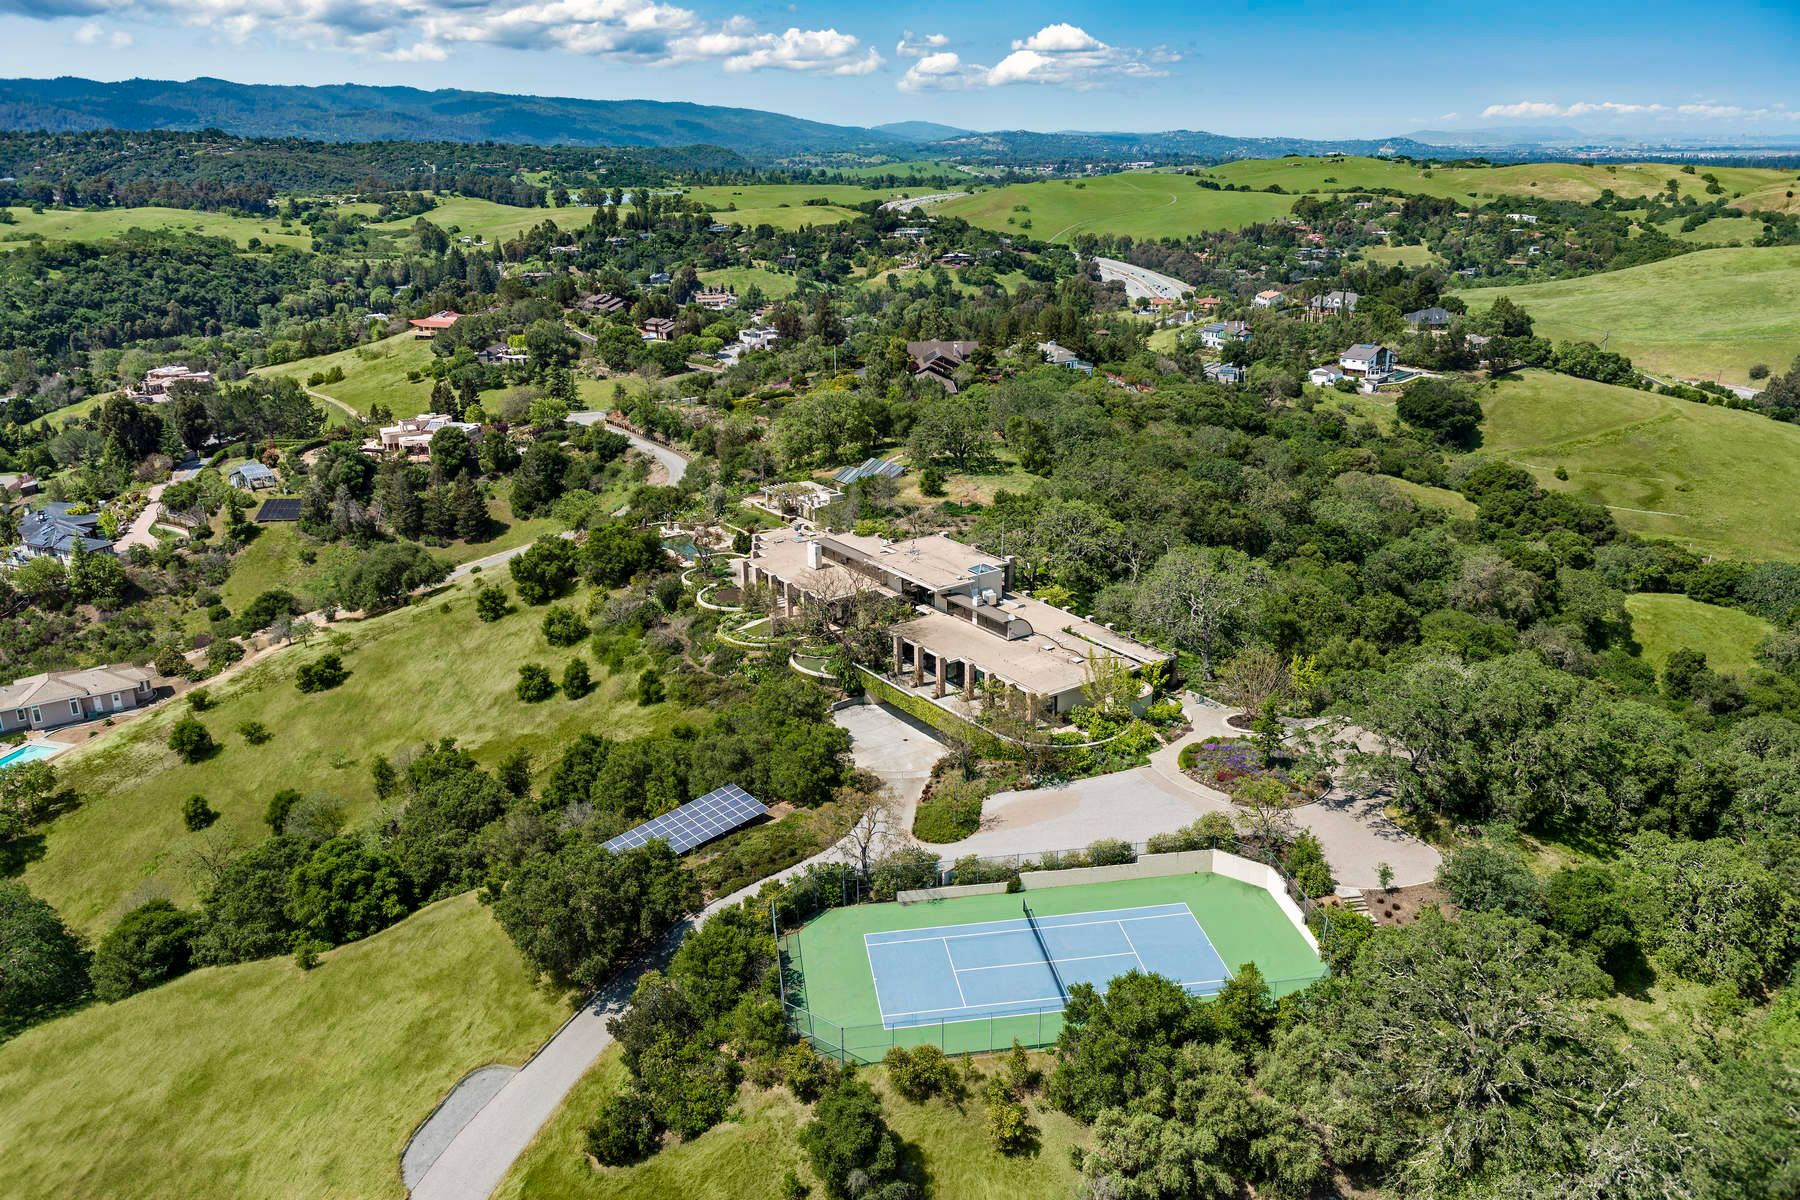 Vivienda unifamiliar por un Venta en Approx. 48 Acres - Los Altos Hills Los Altos Hills, California, 94022 Estados Unidos